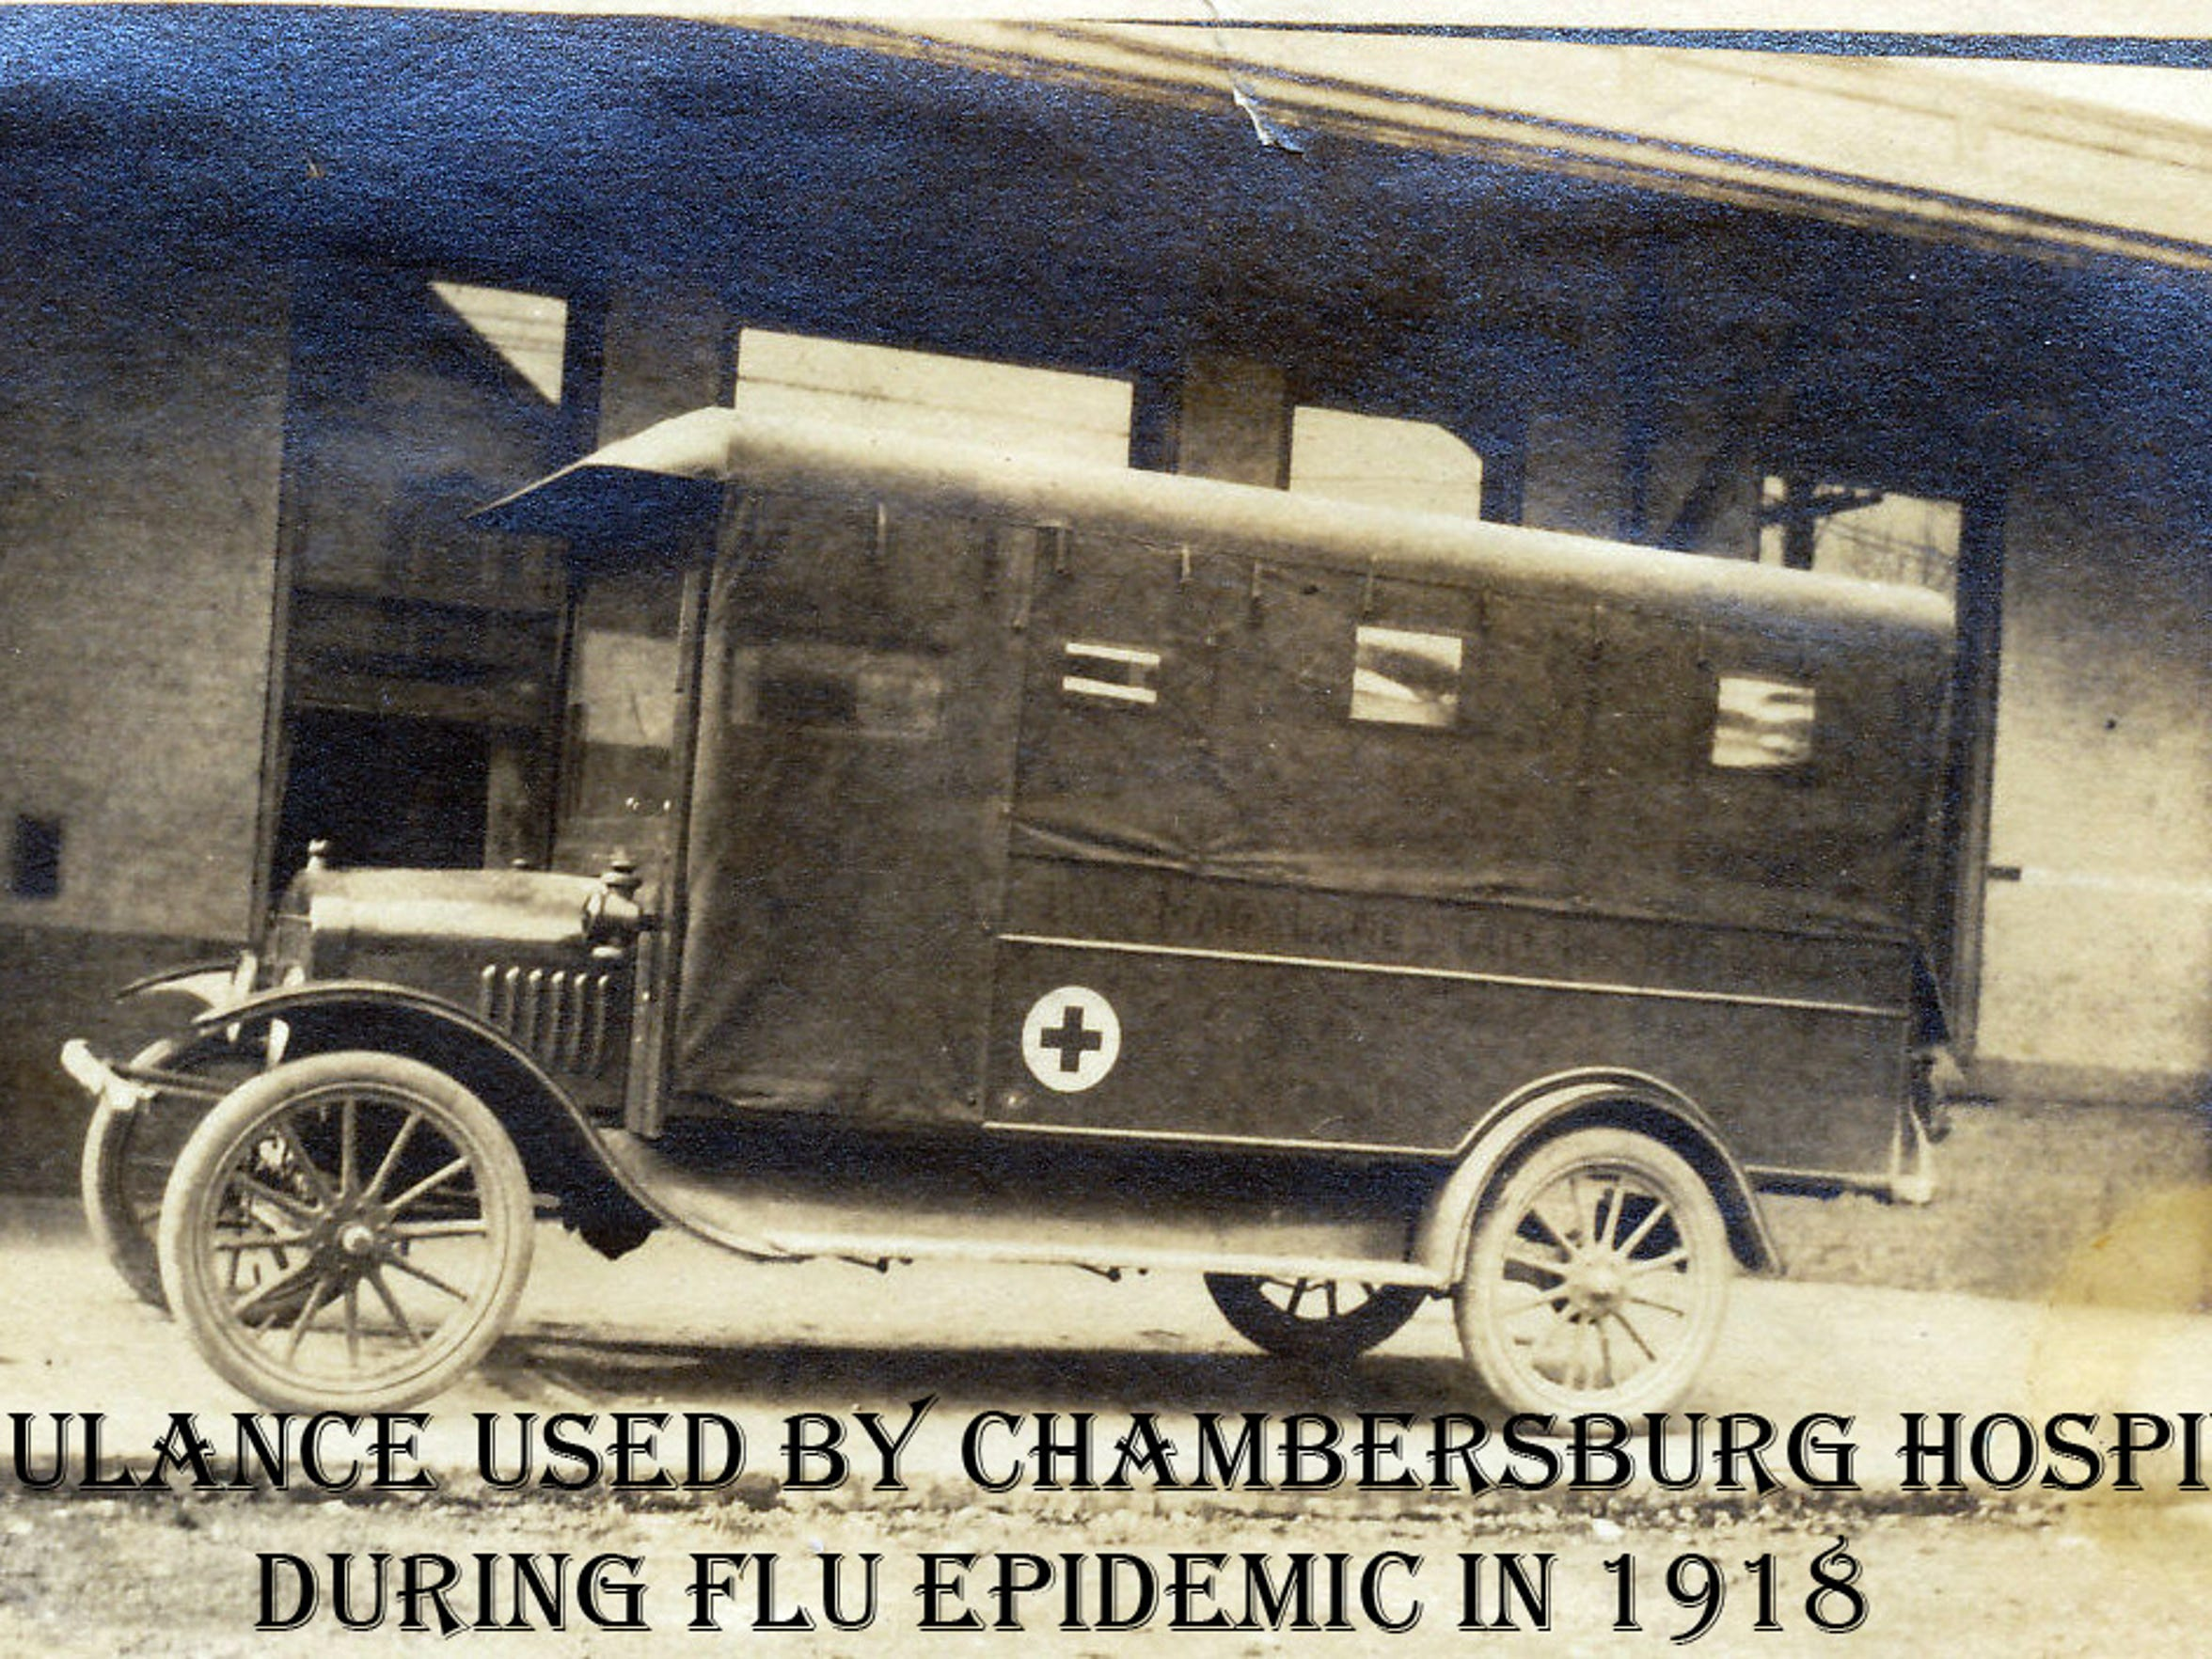 The ambulance used by Chambersburg Hospital during the 1918 flu epidemic is pictured at the corner of North Third and East King streets at the former Cumberland Valley R.R. Station.